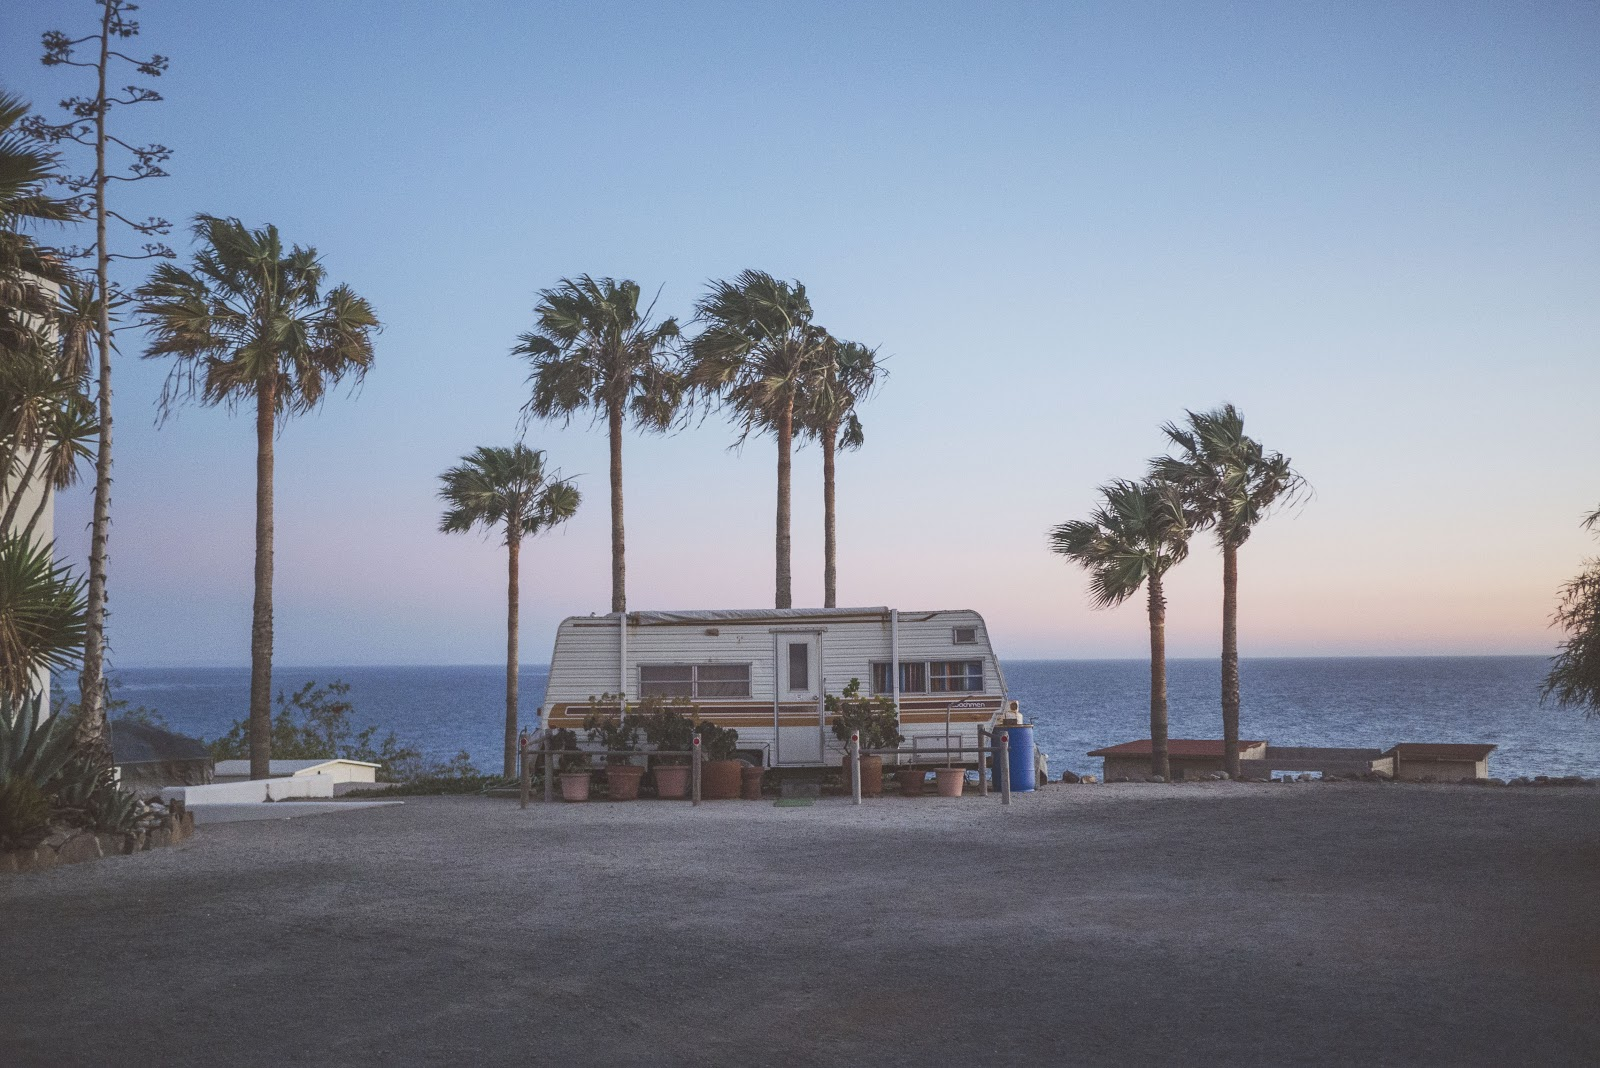 Now Youre On Your Way To Discovering The Most Epic RV Camping Spots In US As They Say Home Is Where You Park It Whether Its A Free Spot